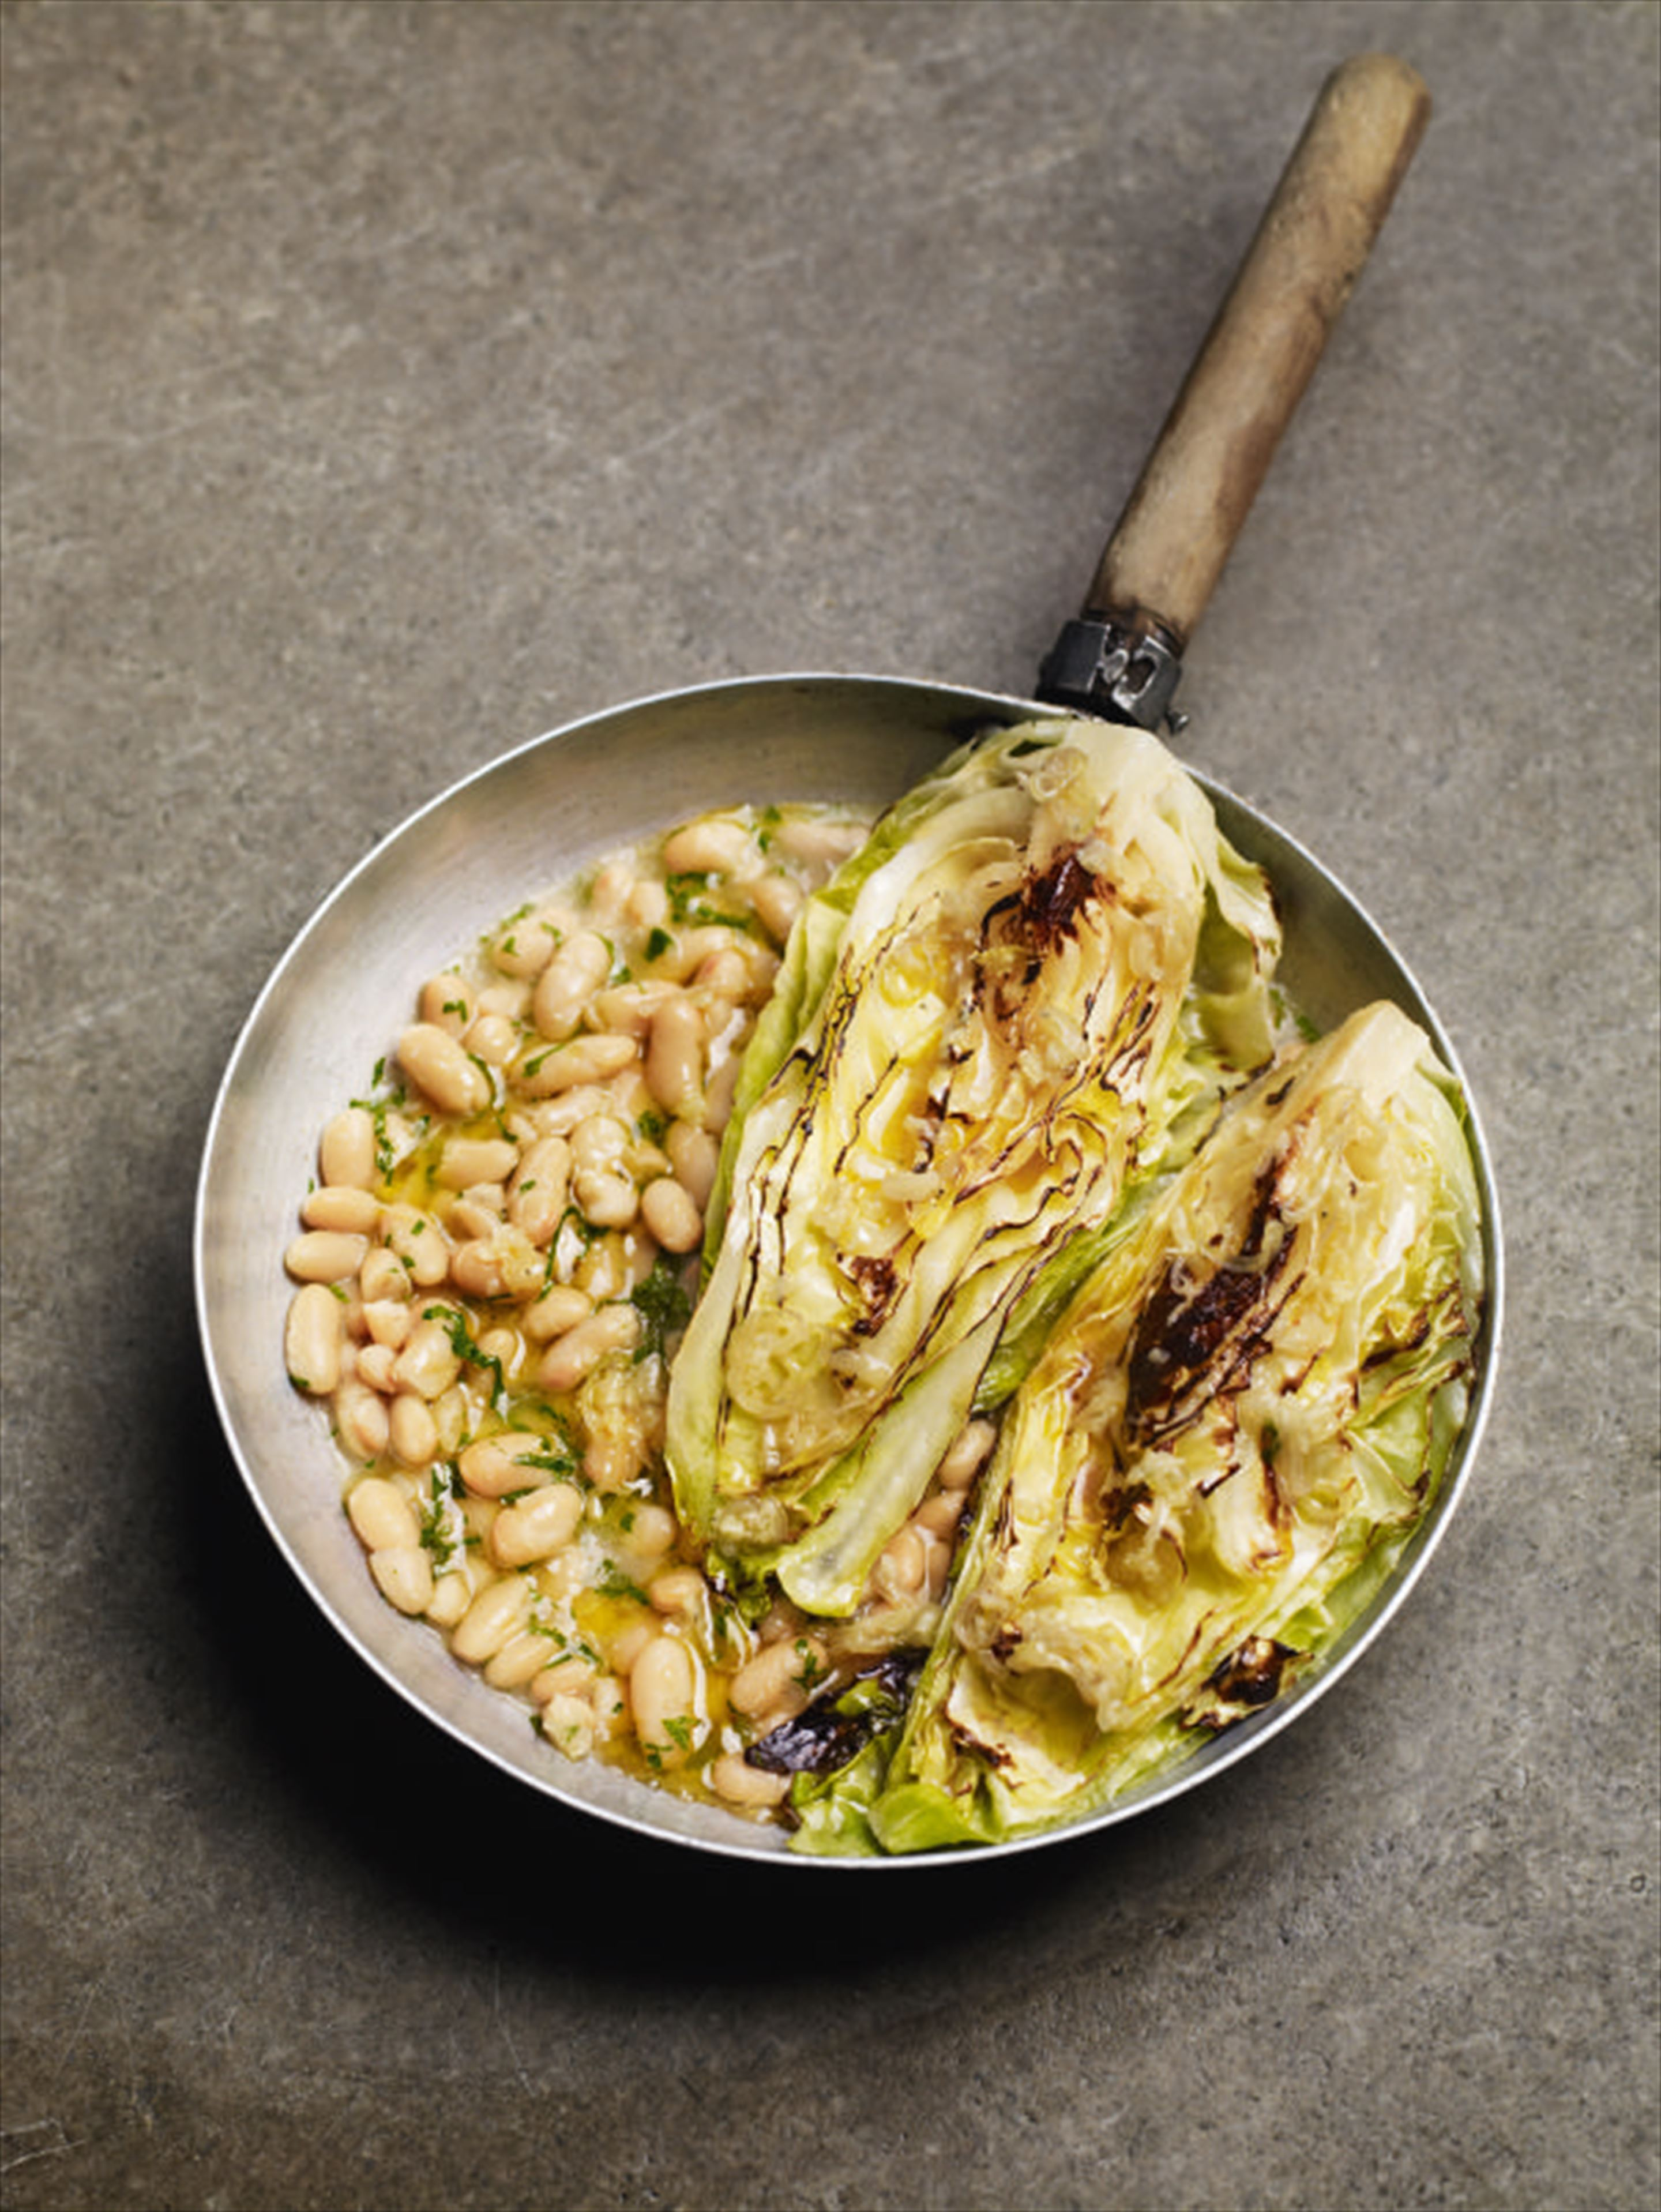 Grilled cabbage with garlic butter and cannellini beans